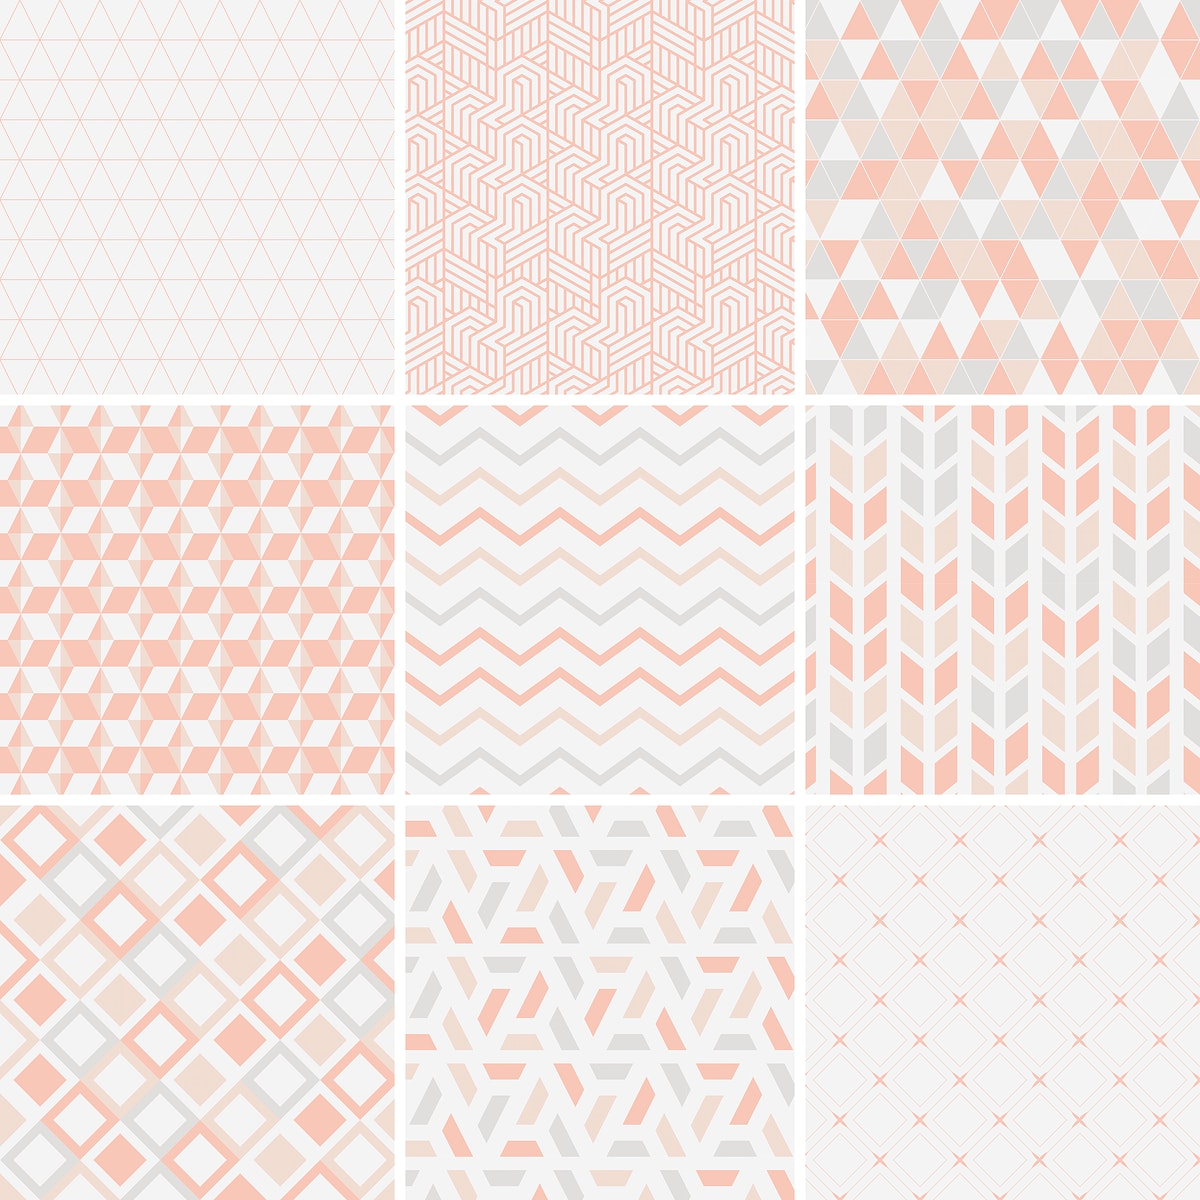 Collection of patterns vector illustration